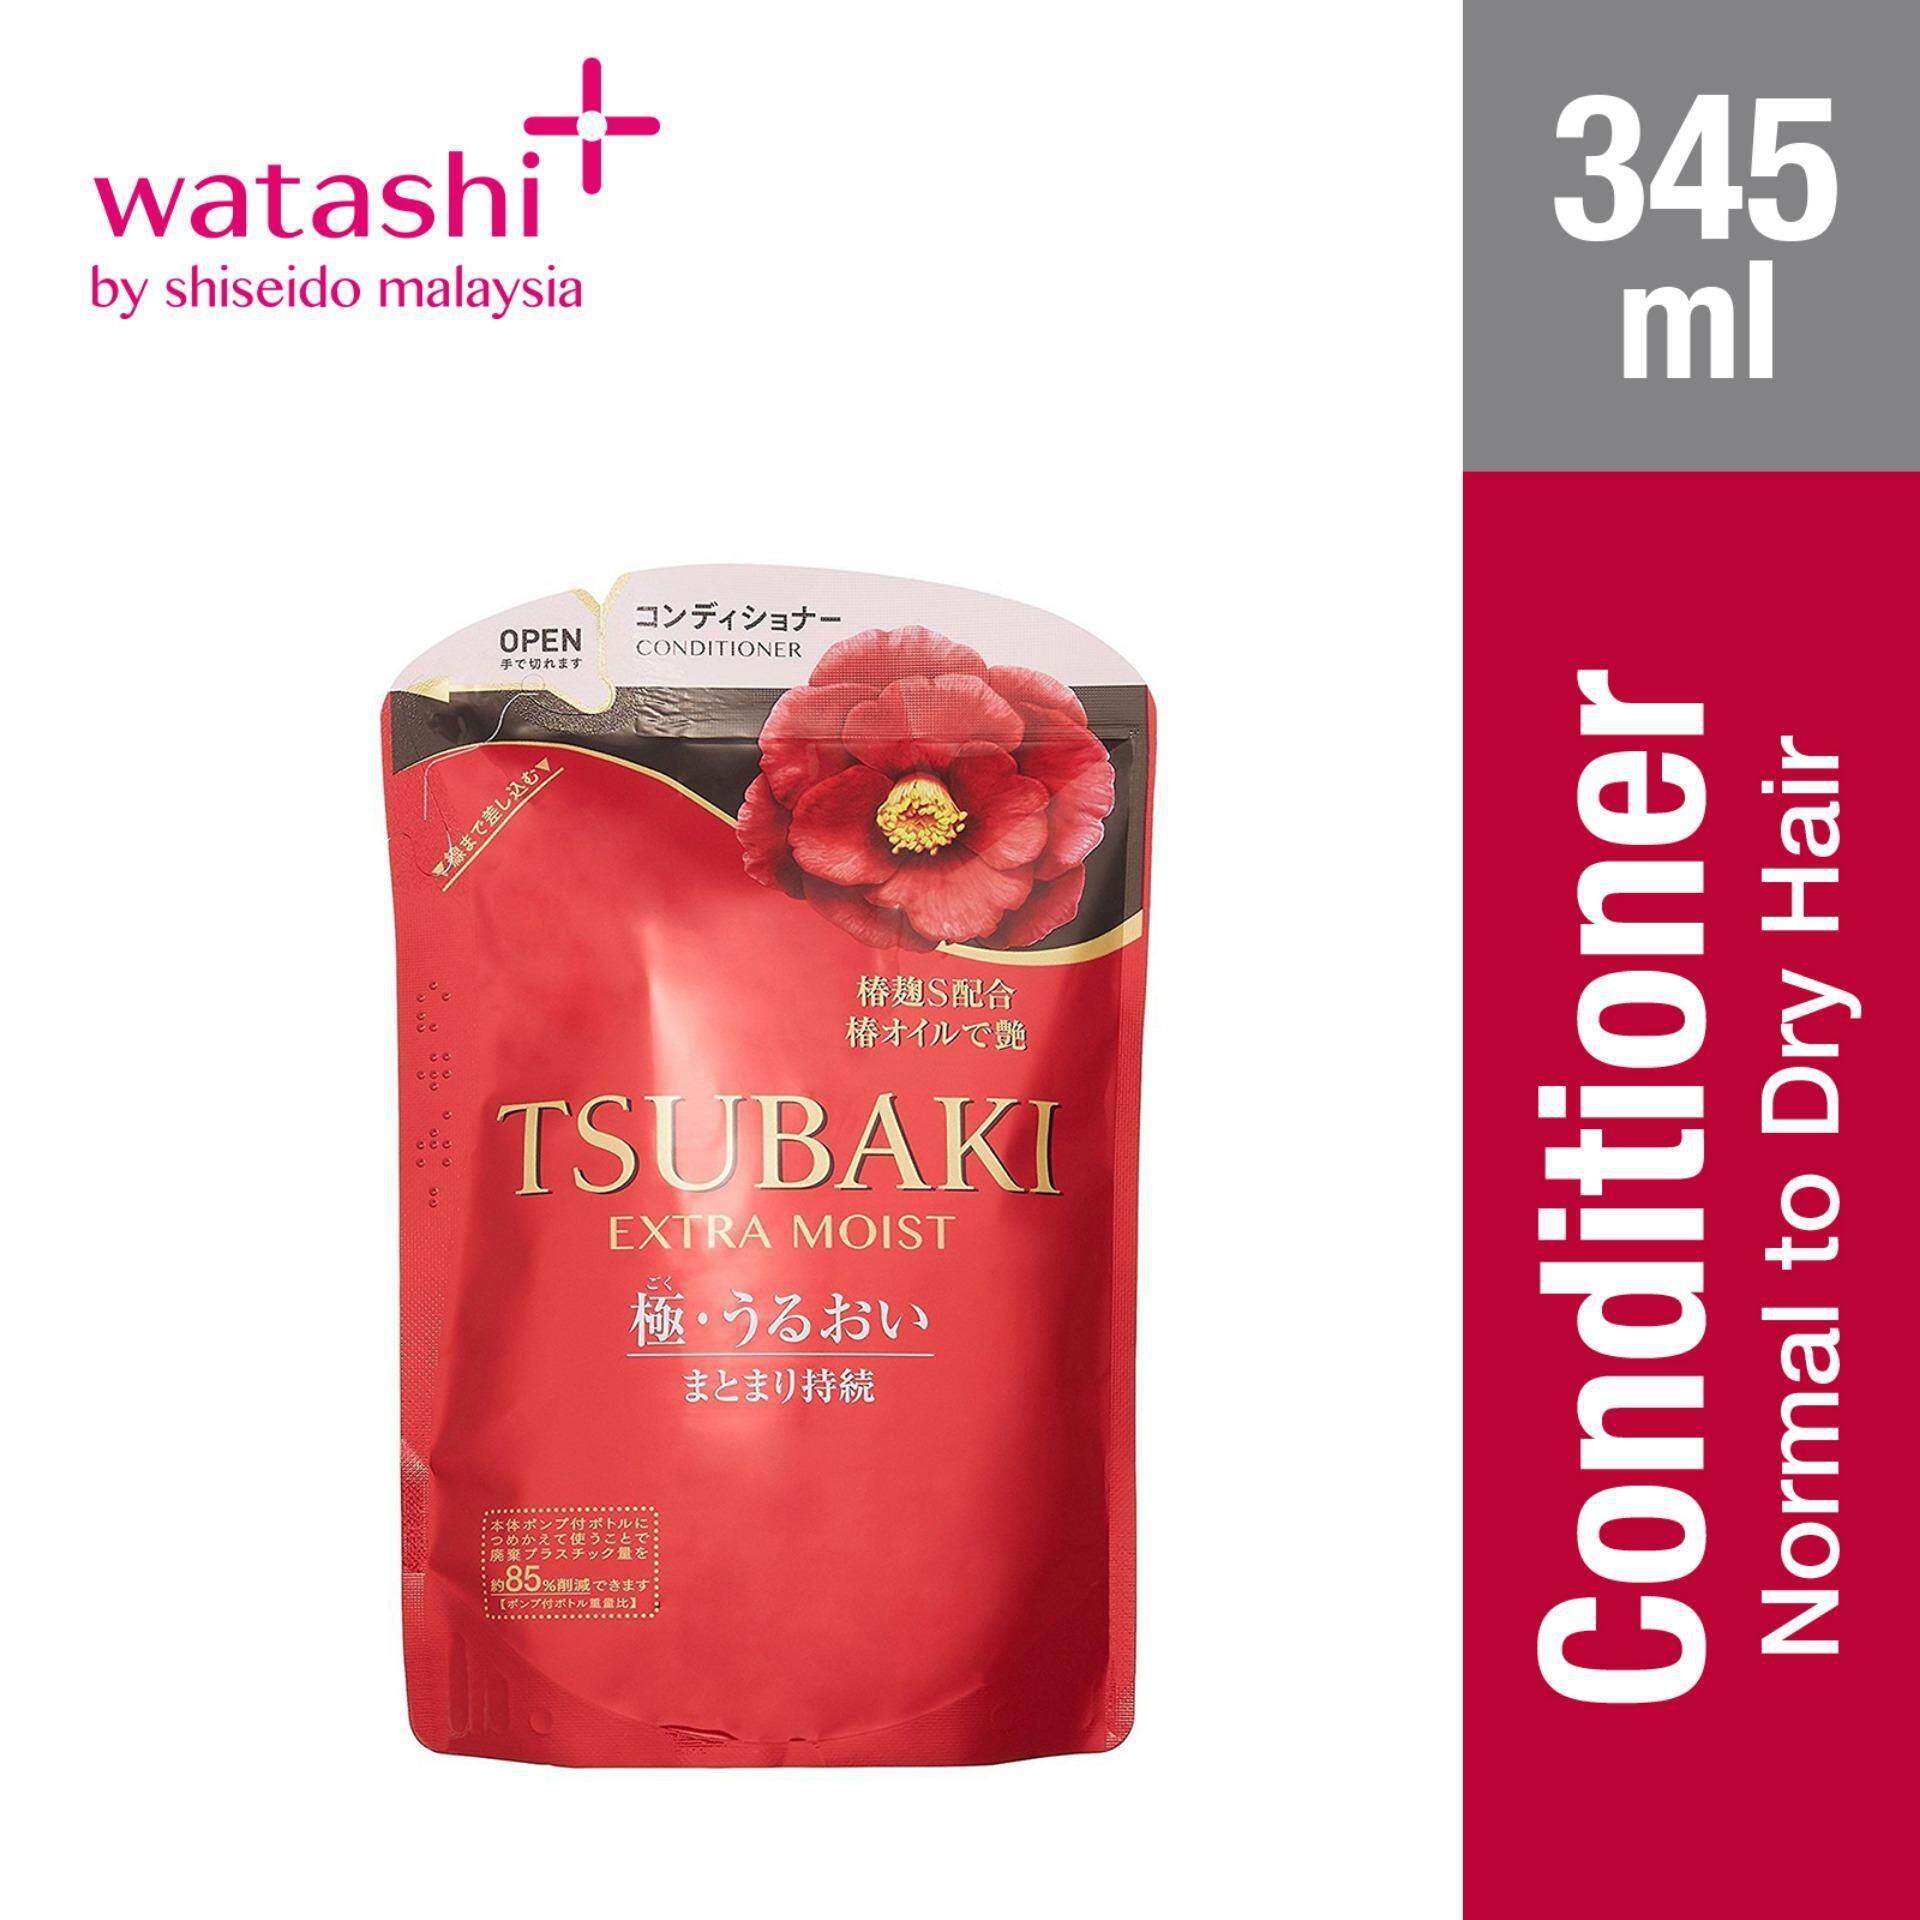 Tsubaki Extra Moist Conditioner Refill Pack 345ml By Jbeauty By Shiseido.